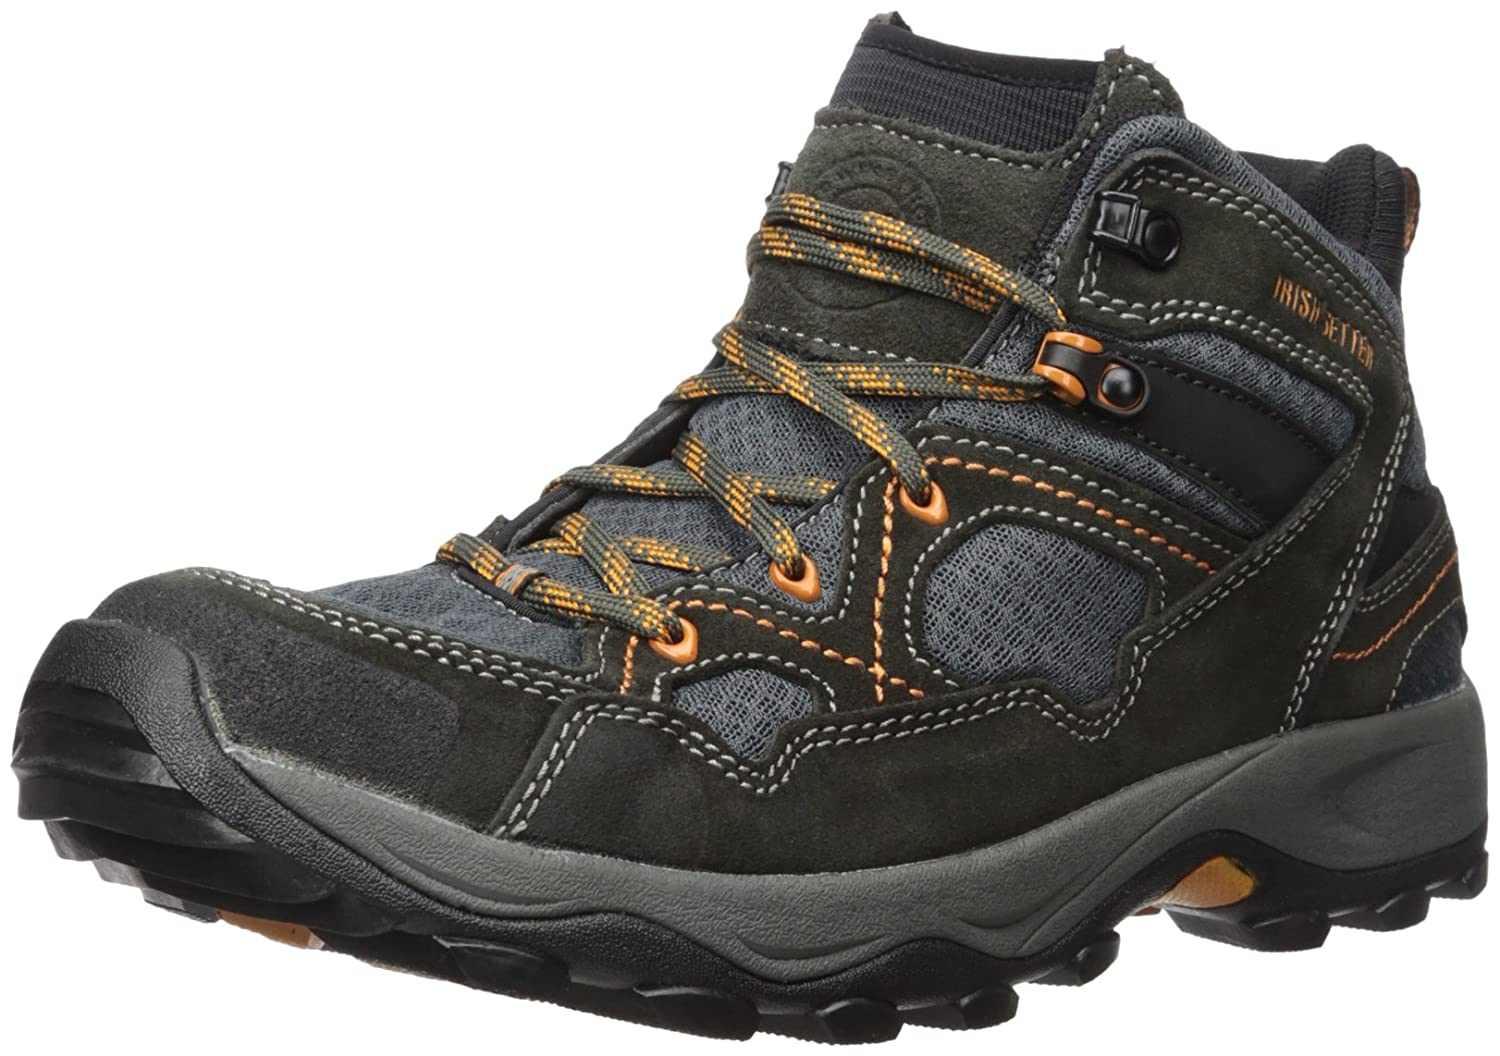 Clothing Sporting Goods Analytical Baffin Swamp Buggy Shoes Uk9